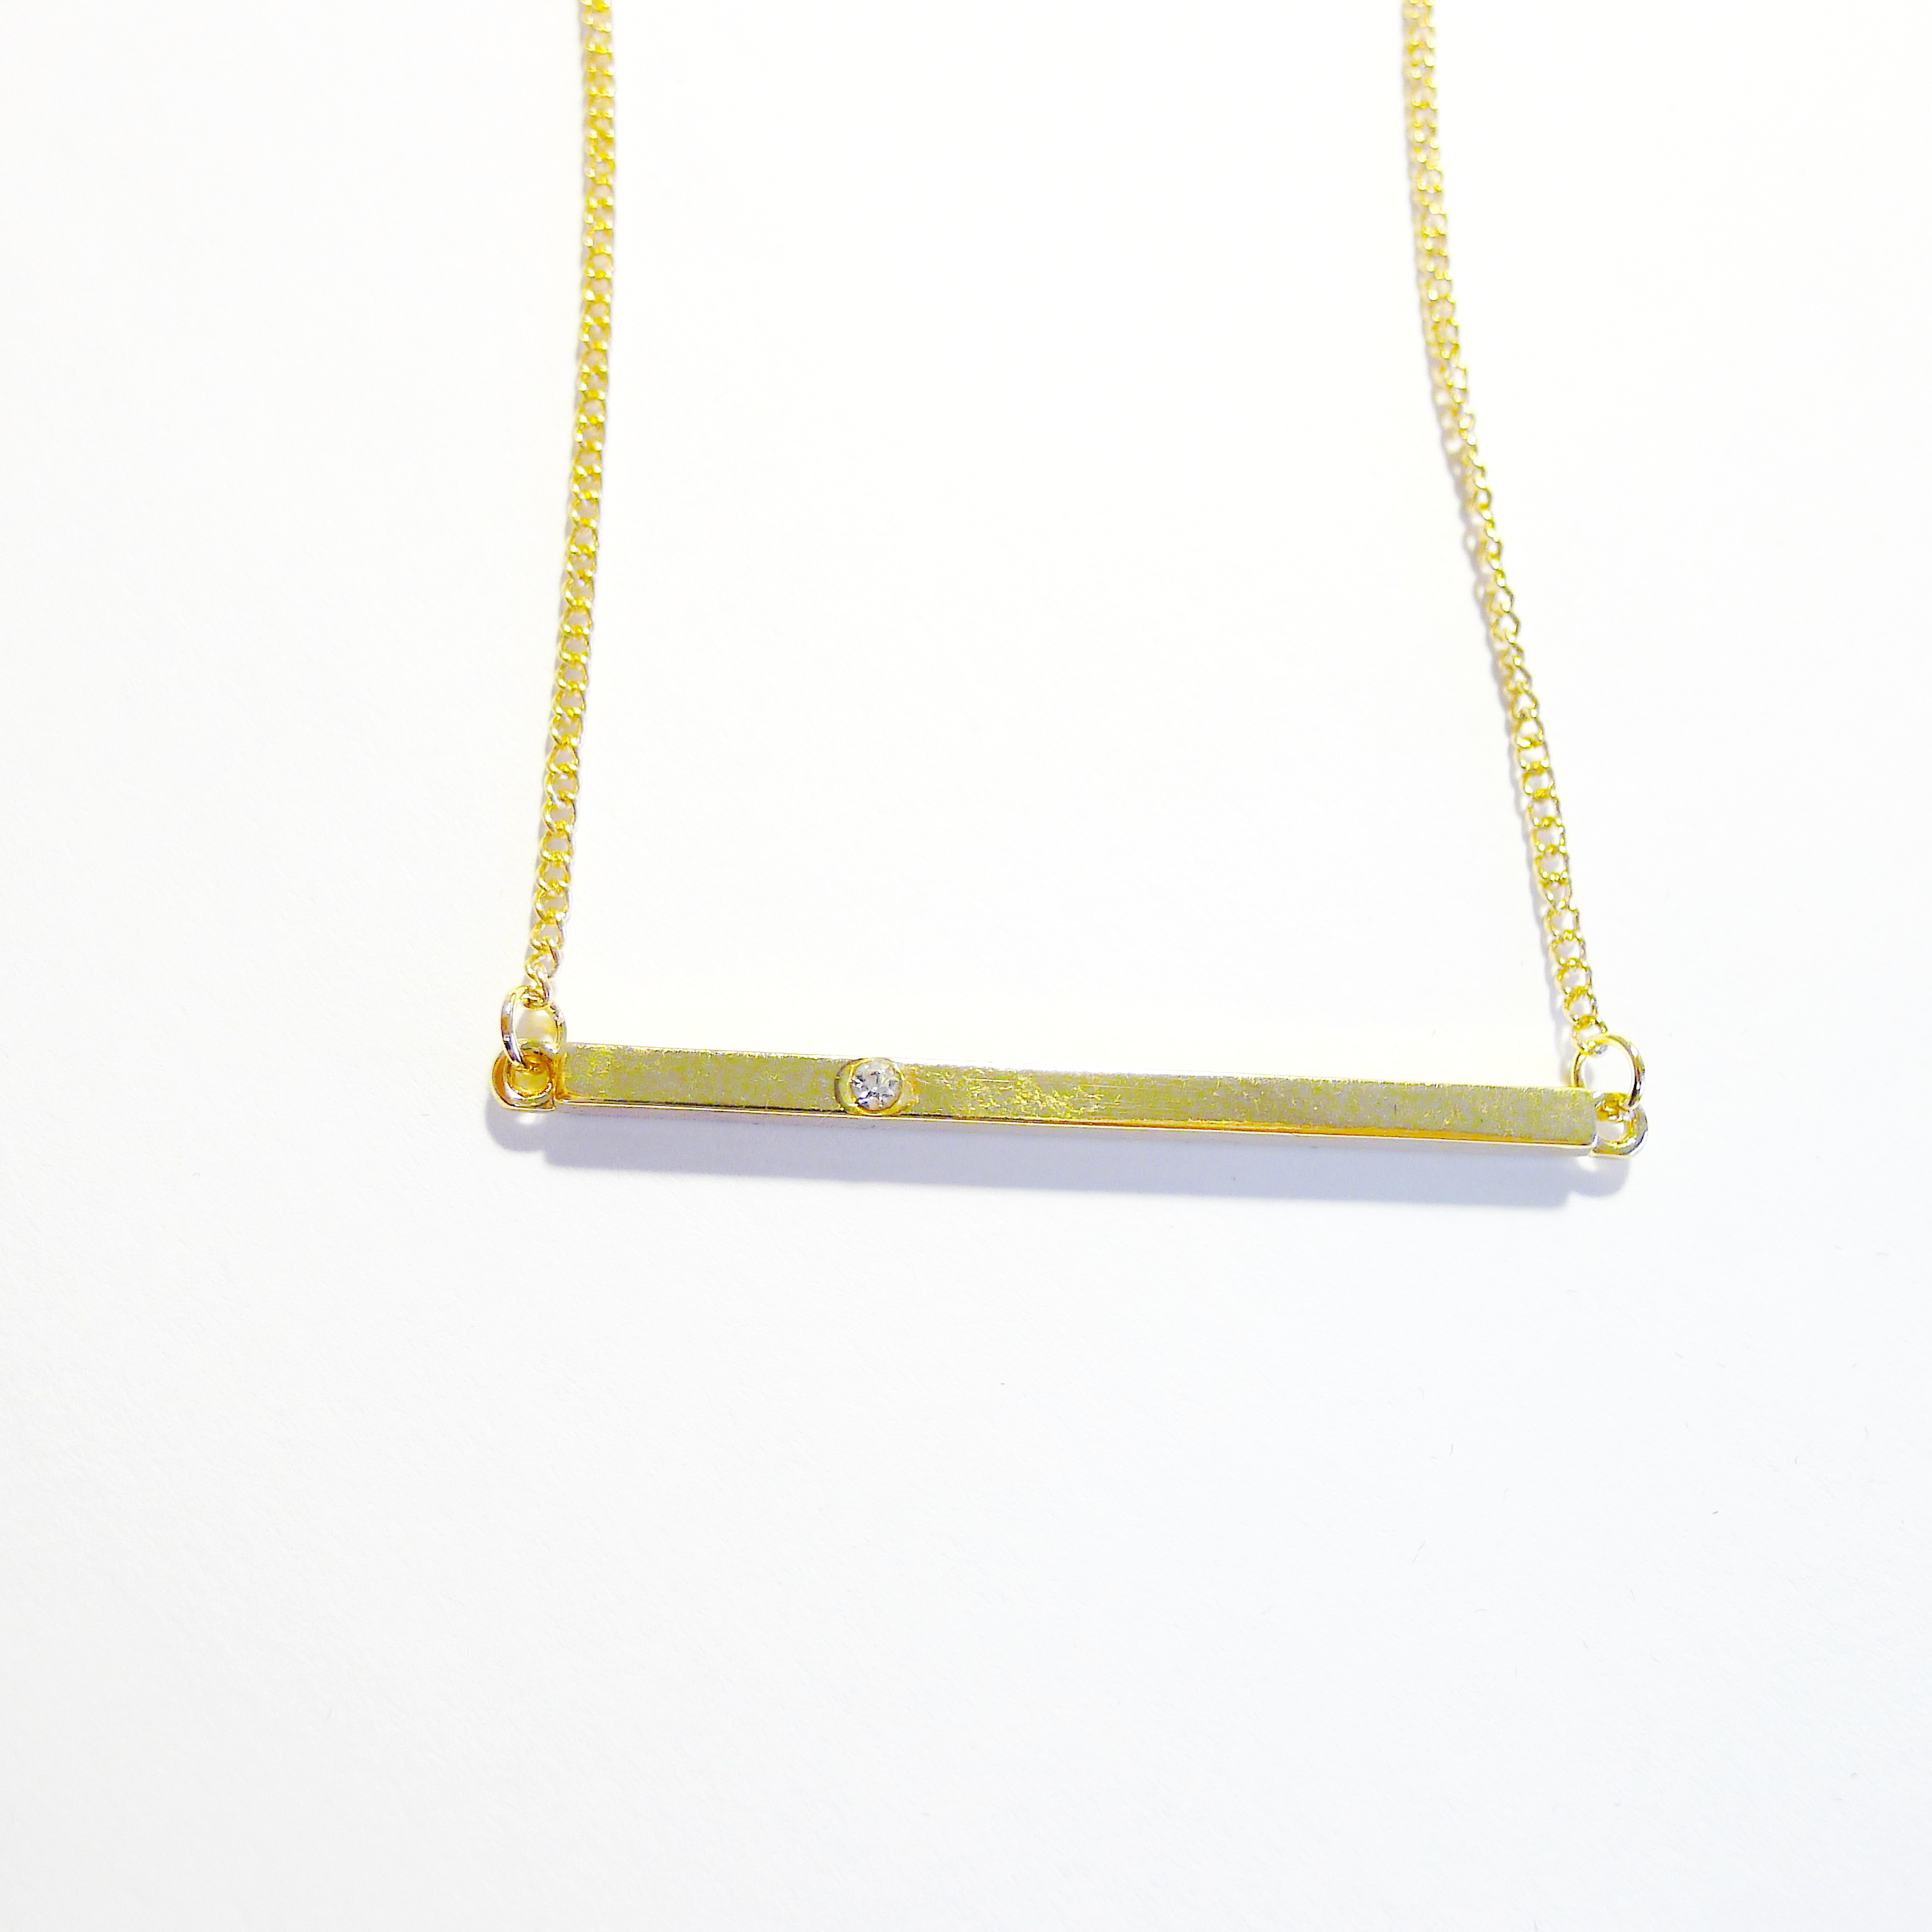 pendant service product bar strand merchandise necklace gold polished